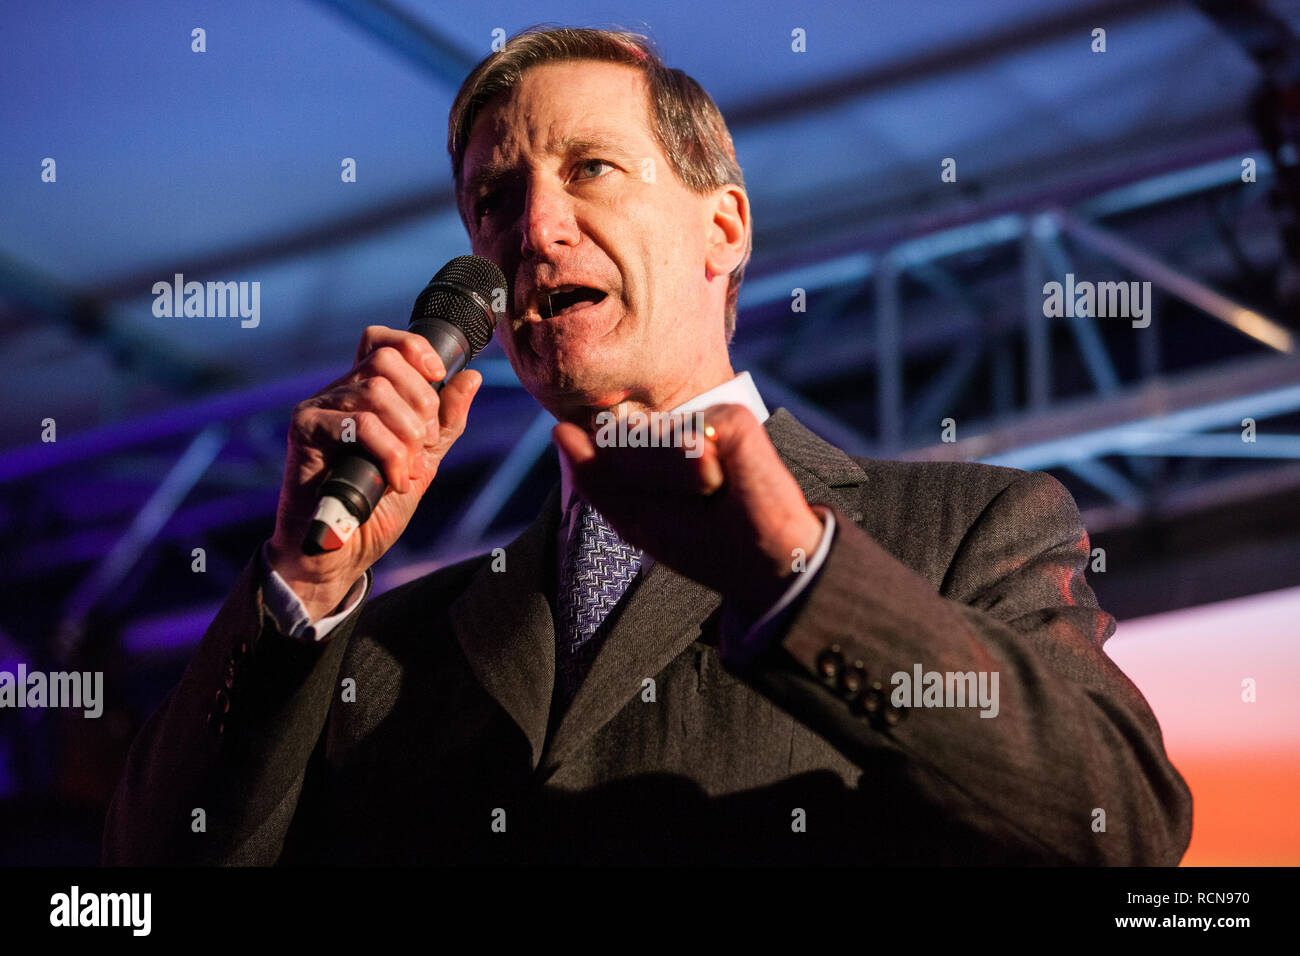 London, UK. 15th January, 2019. Dominic Grieve, Conservative MP for Beaconsfield, addresses pro-EU activists attending a People's Vote rally in Parliament Square as MPs vote in the House of Commons on Prime Minister Theresa May's proposed final Brexit withdrawal agreement. Credit: Mark Kerrison/Alamy Live News Stock Photo